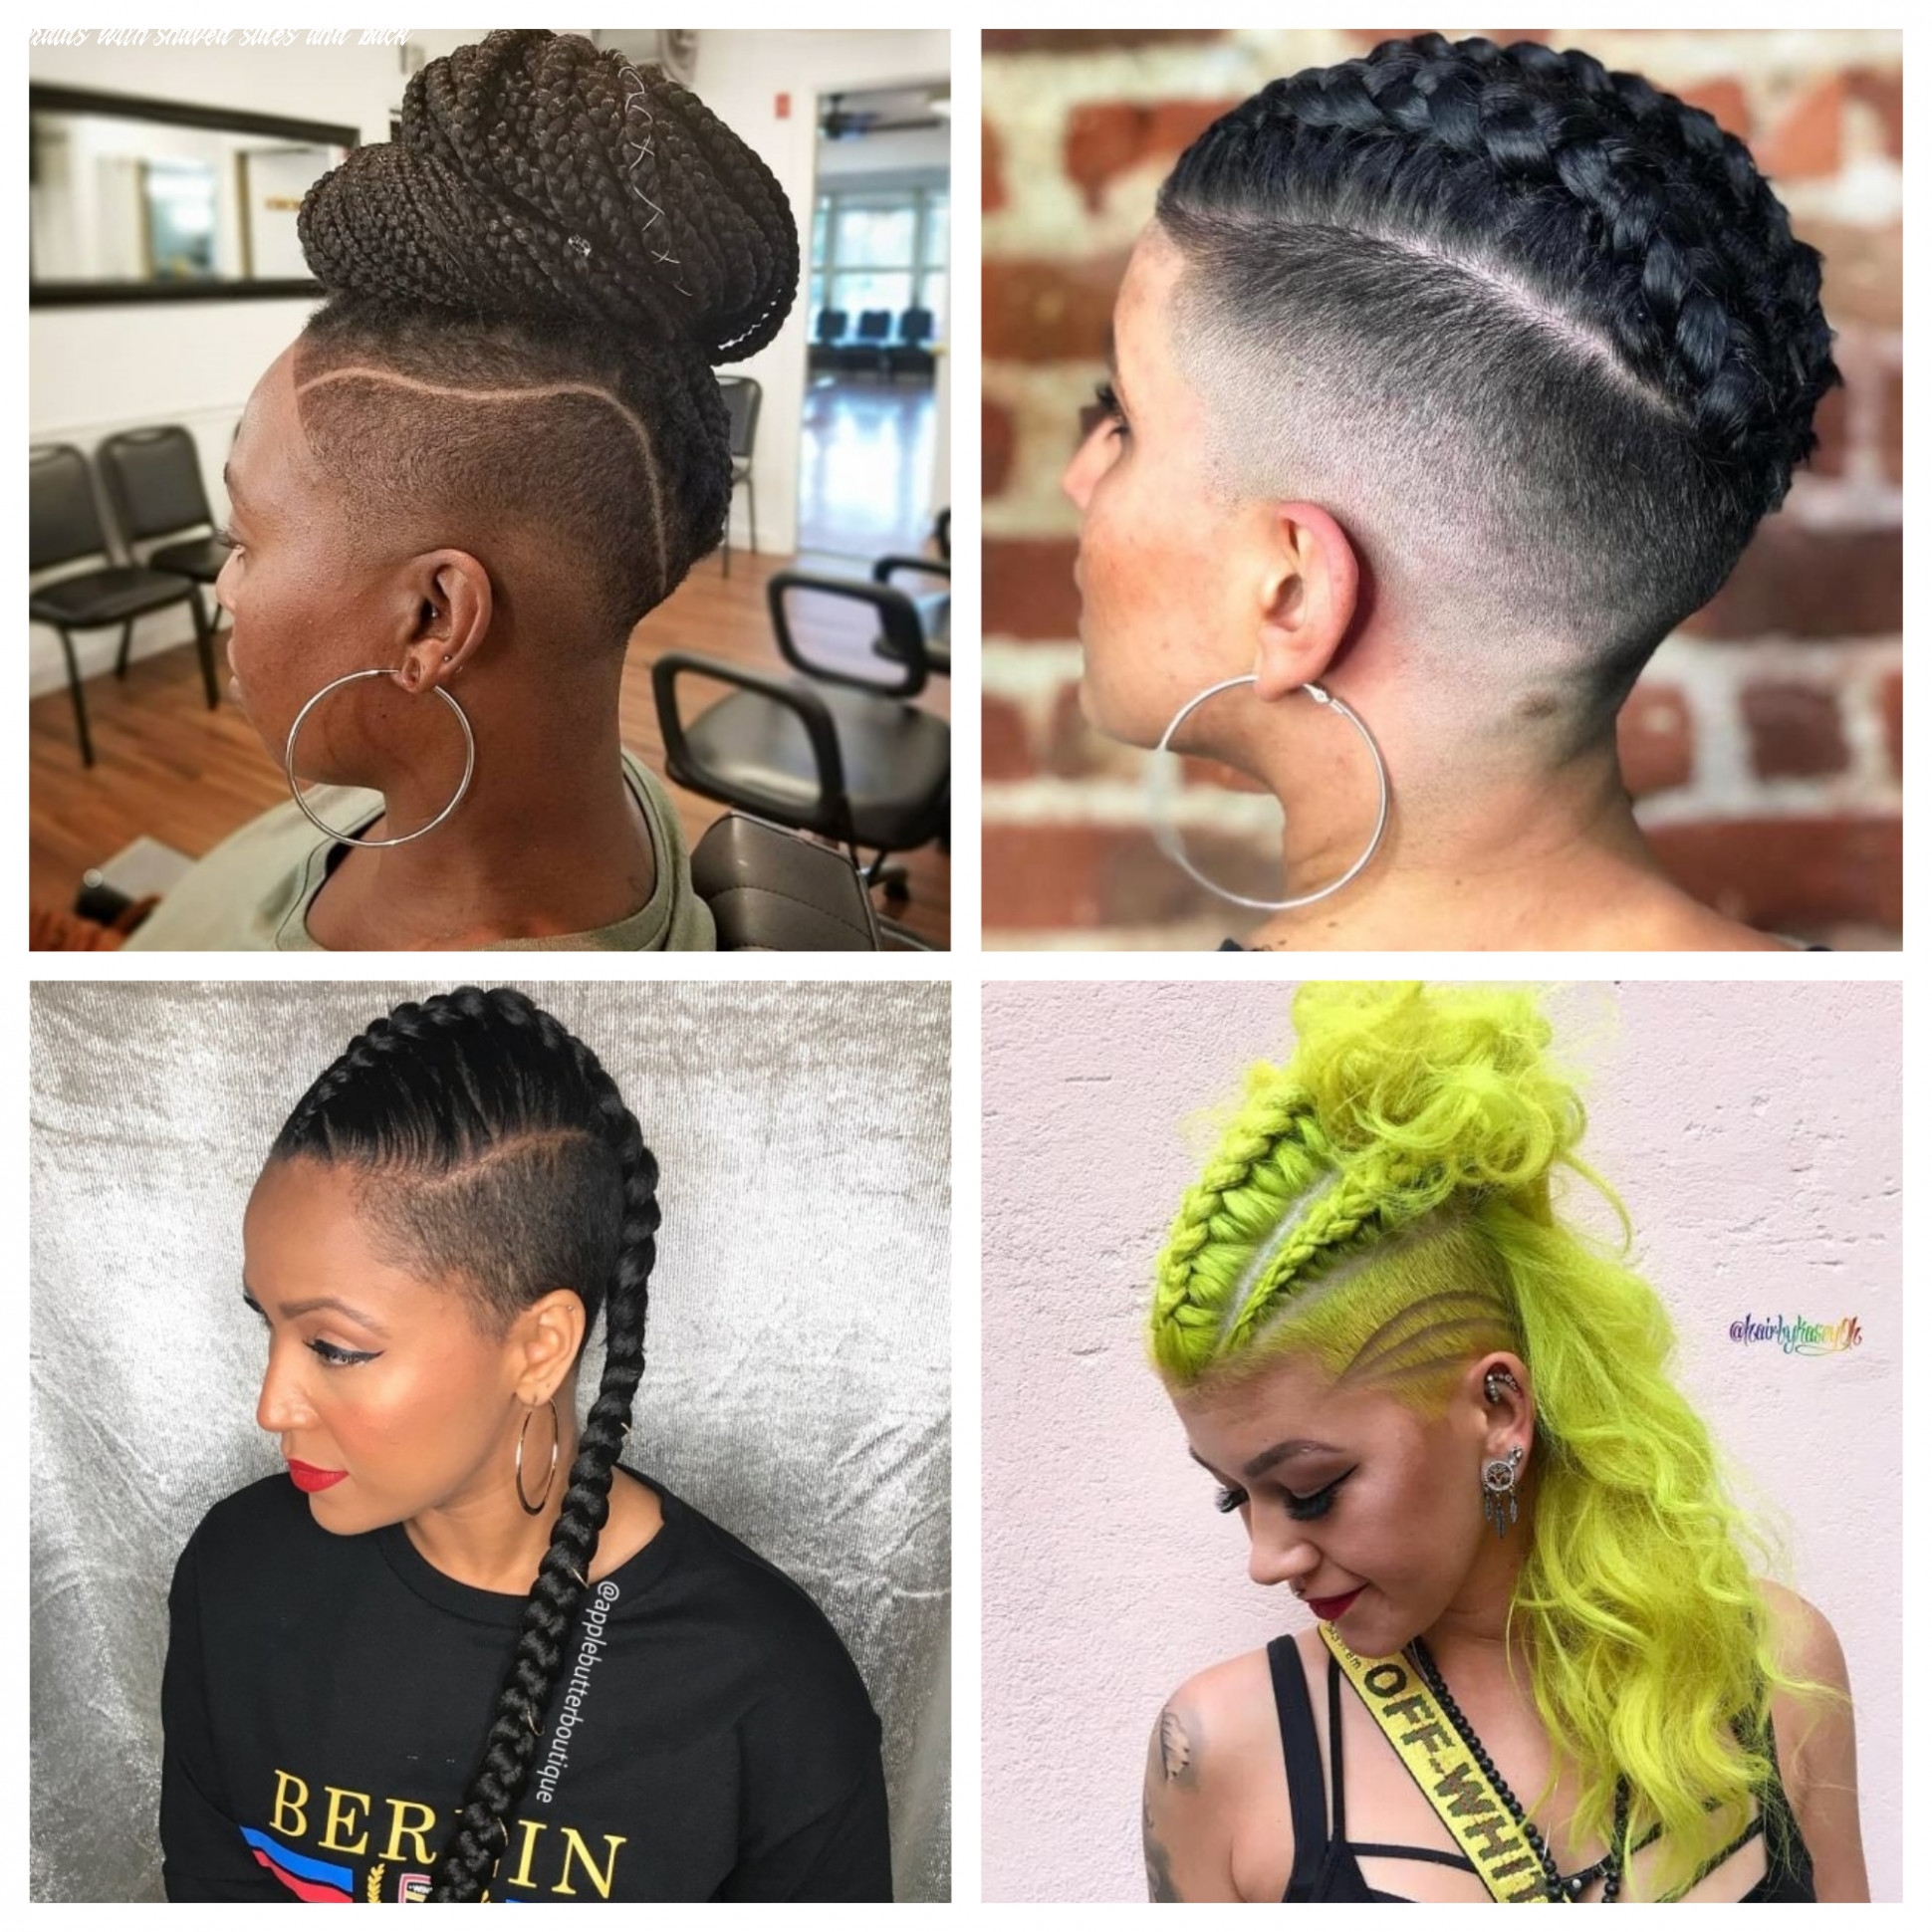 Short hairstyles | 12 haircuts, hairstyles and hair colors braids with shaved sides and back